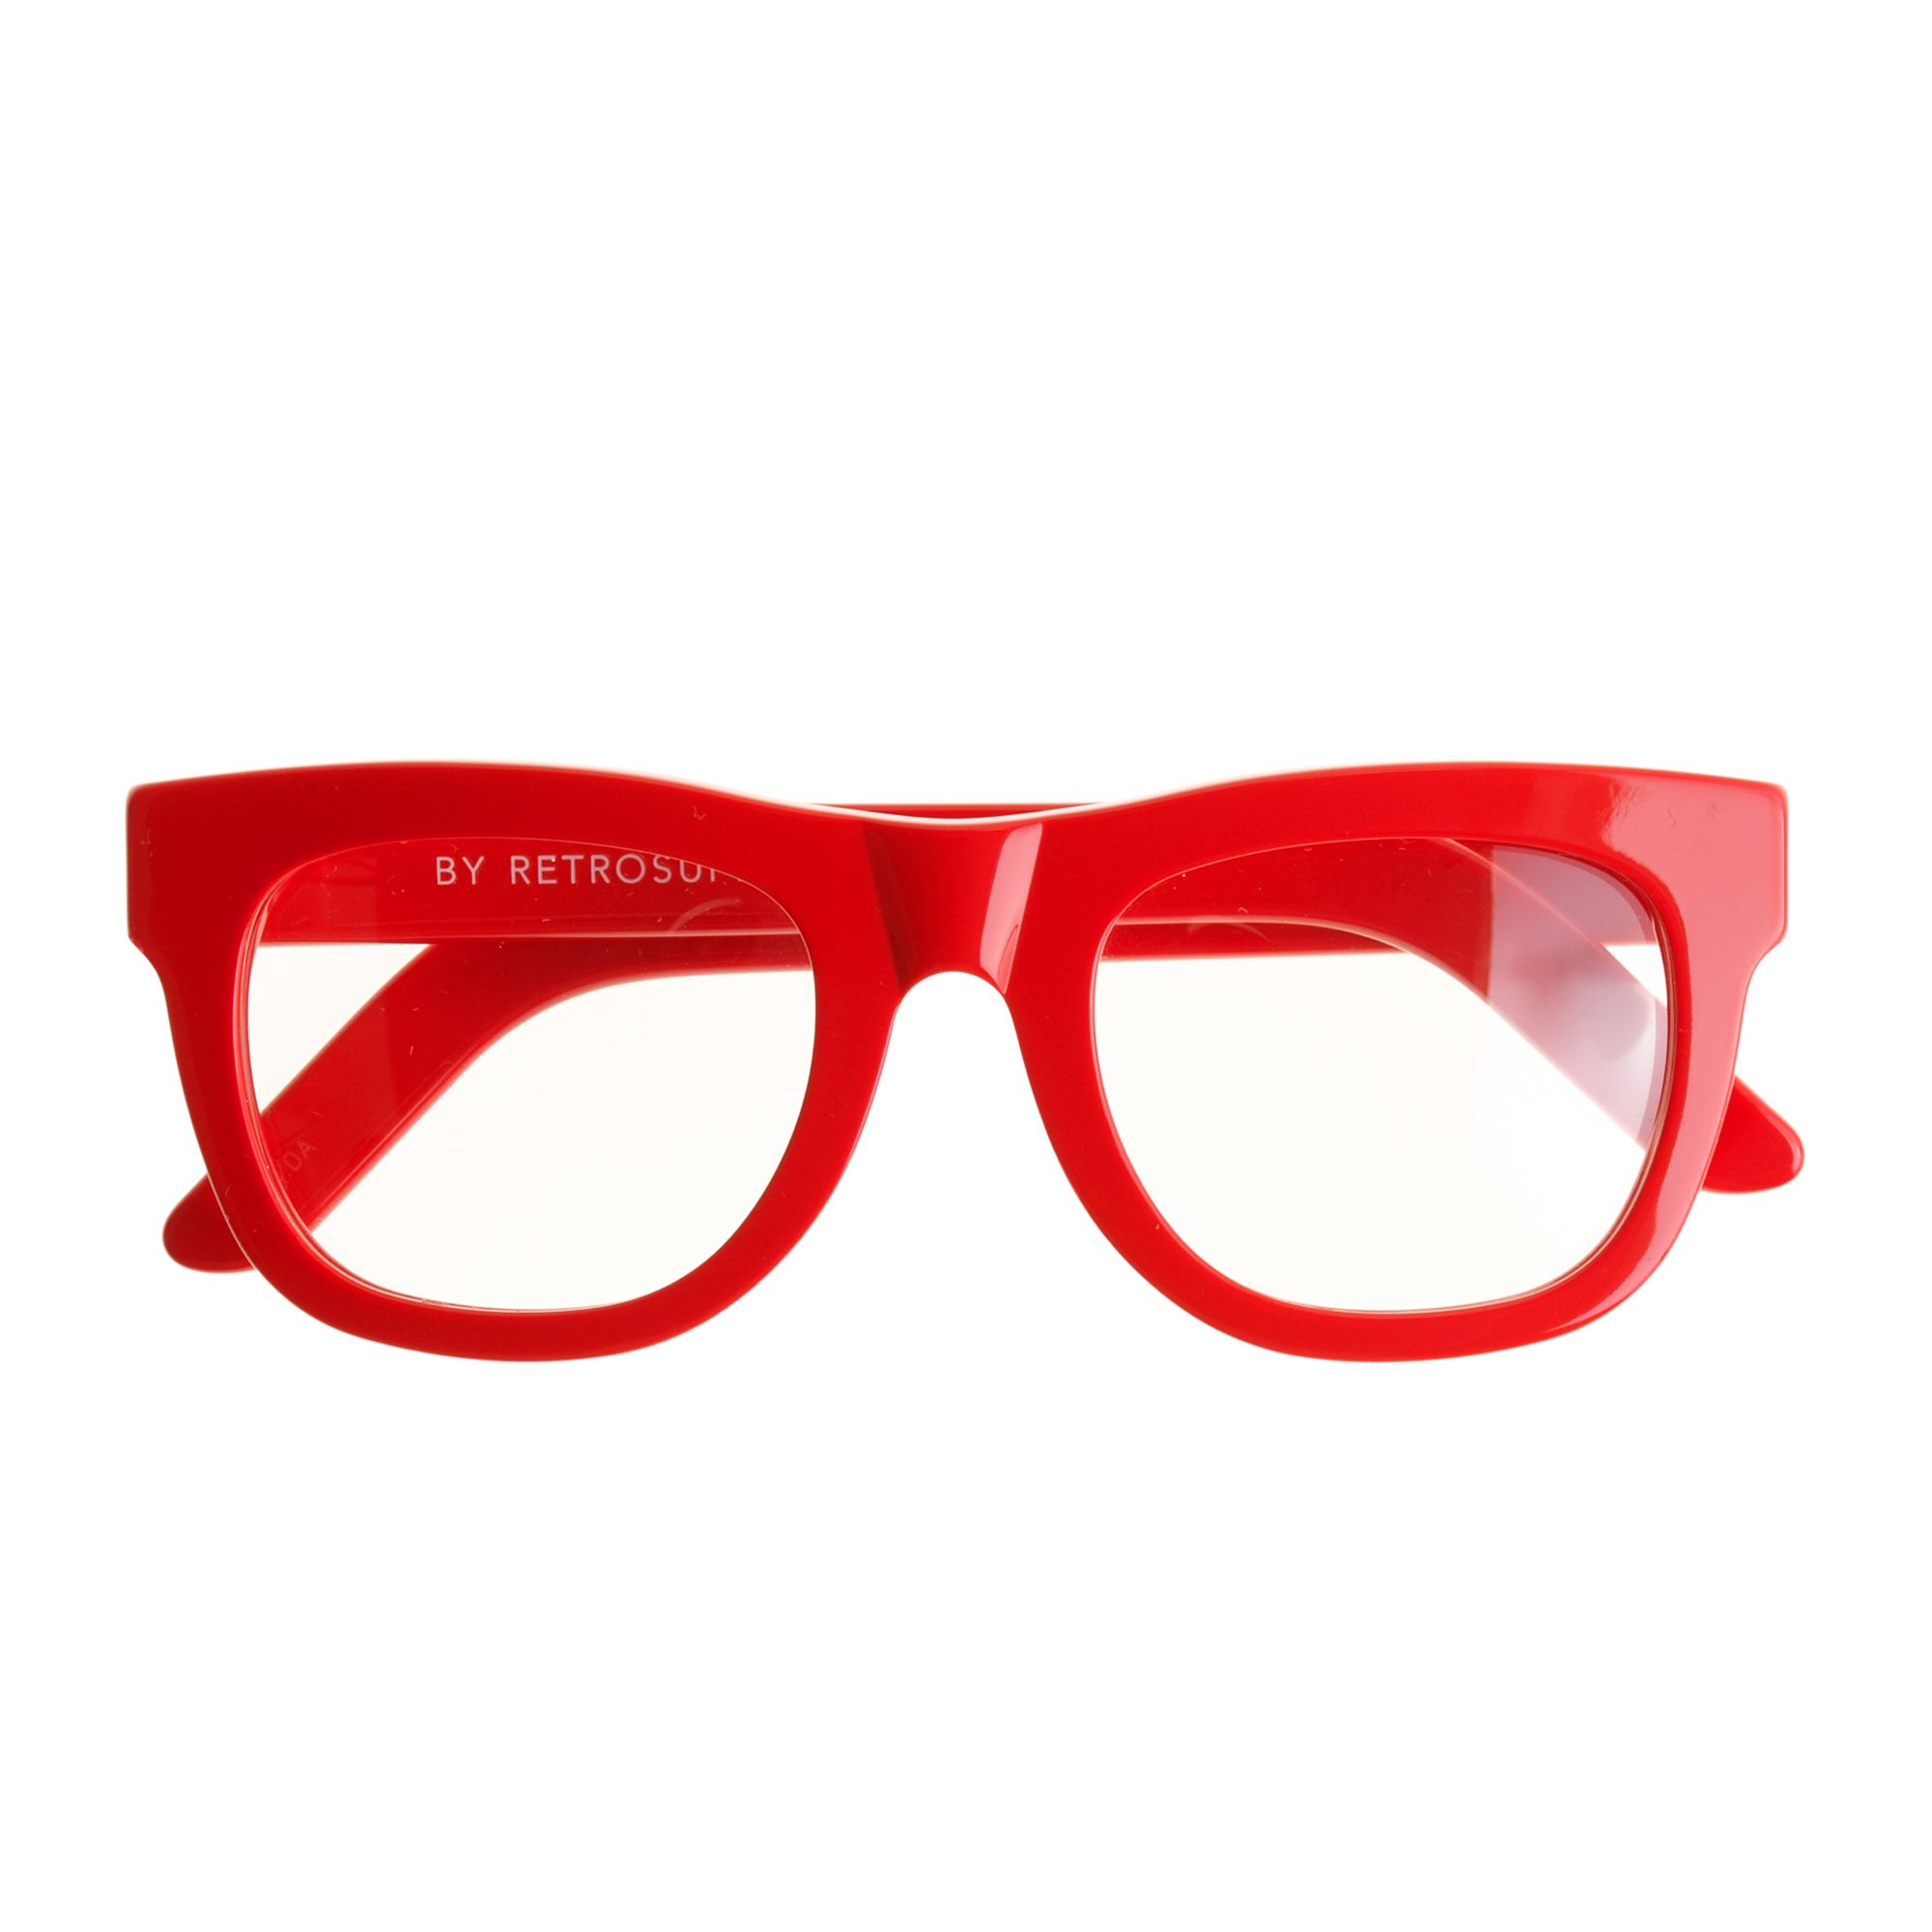 J Crew Super Ciccio Eyeglasses In Red Diner Red Lyst